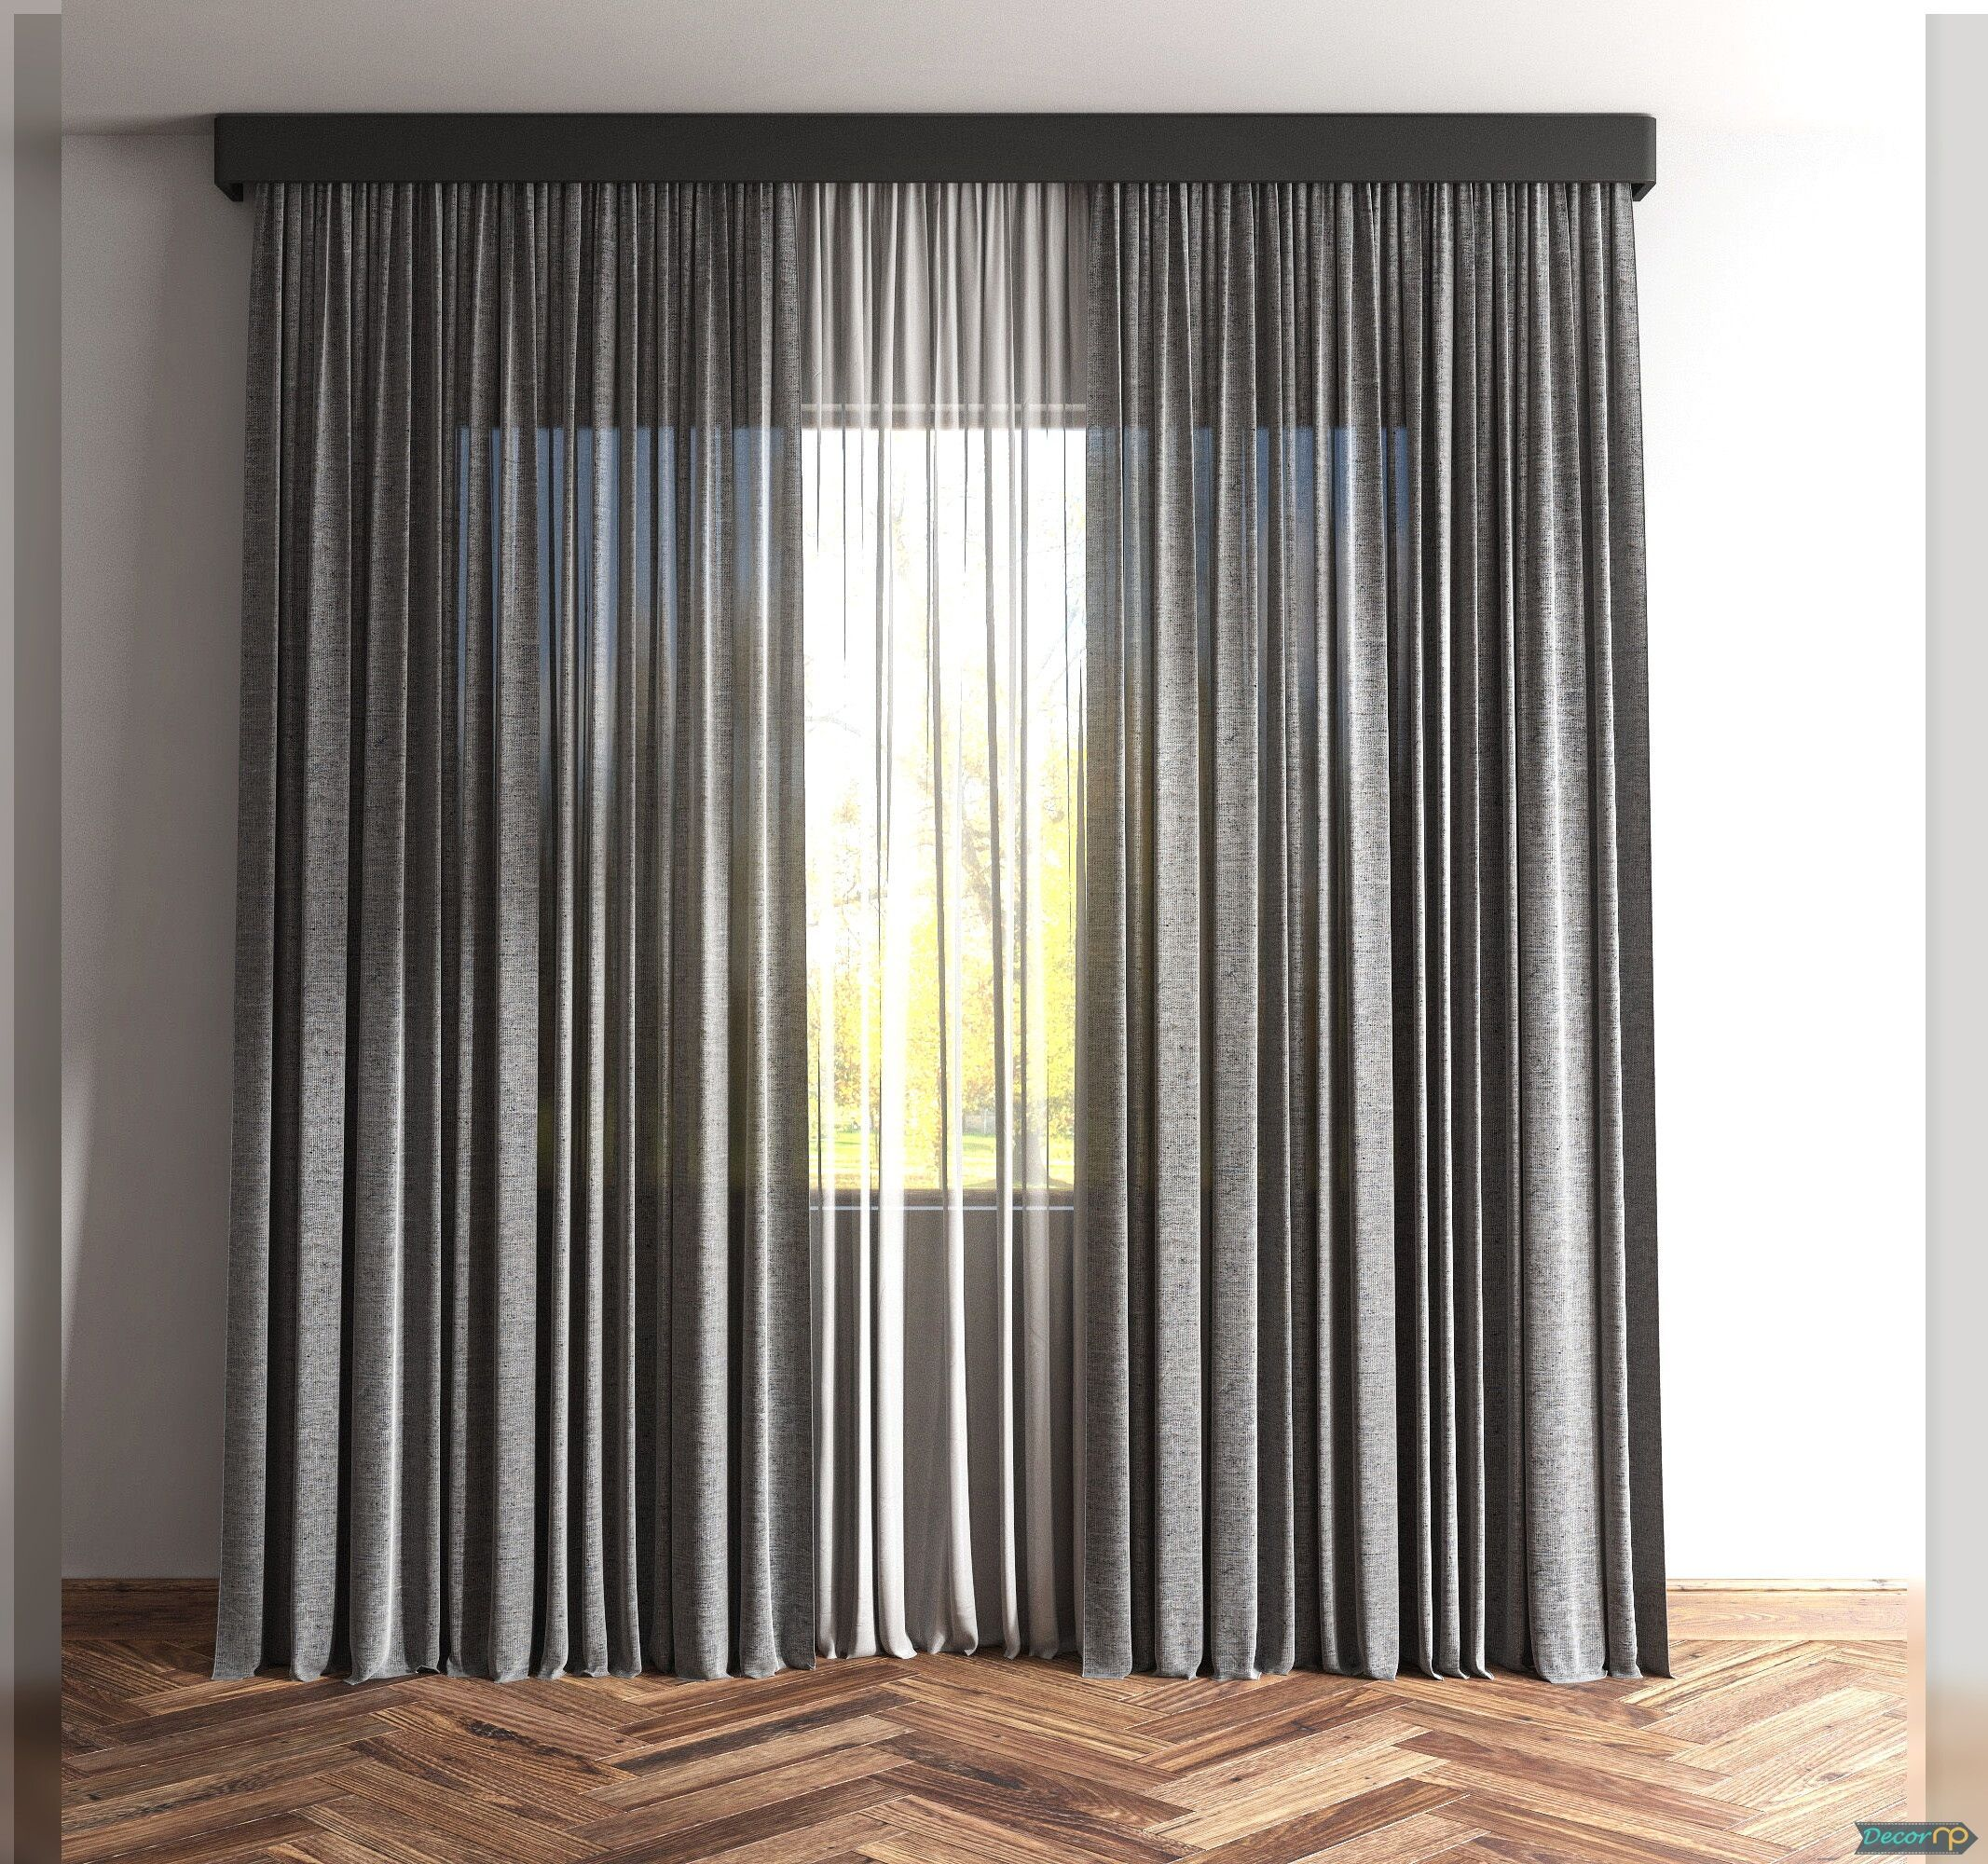 Red Curtains A Selection Of The Best In 2018 Curtainsmodels Swagcurtainsideas